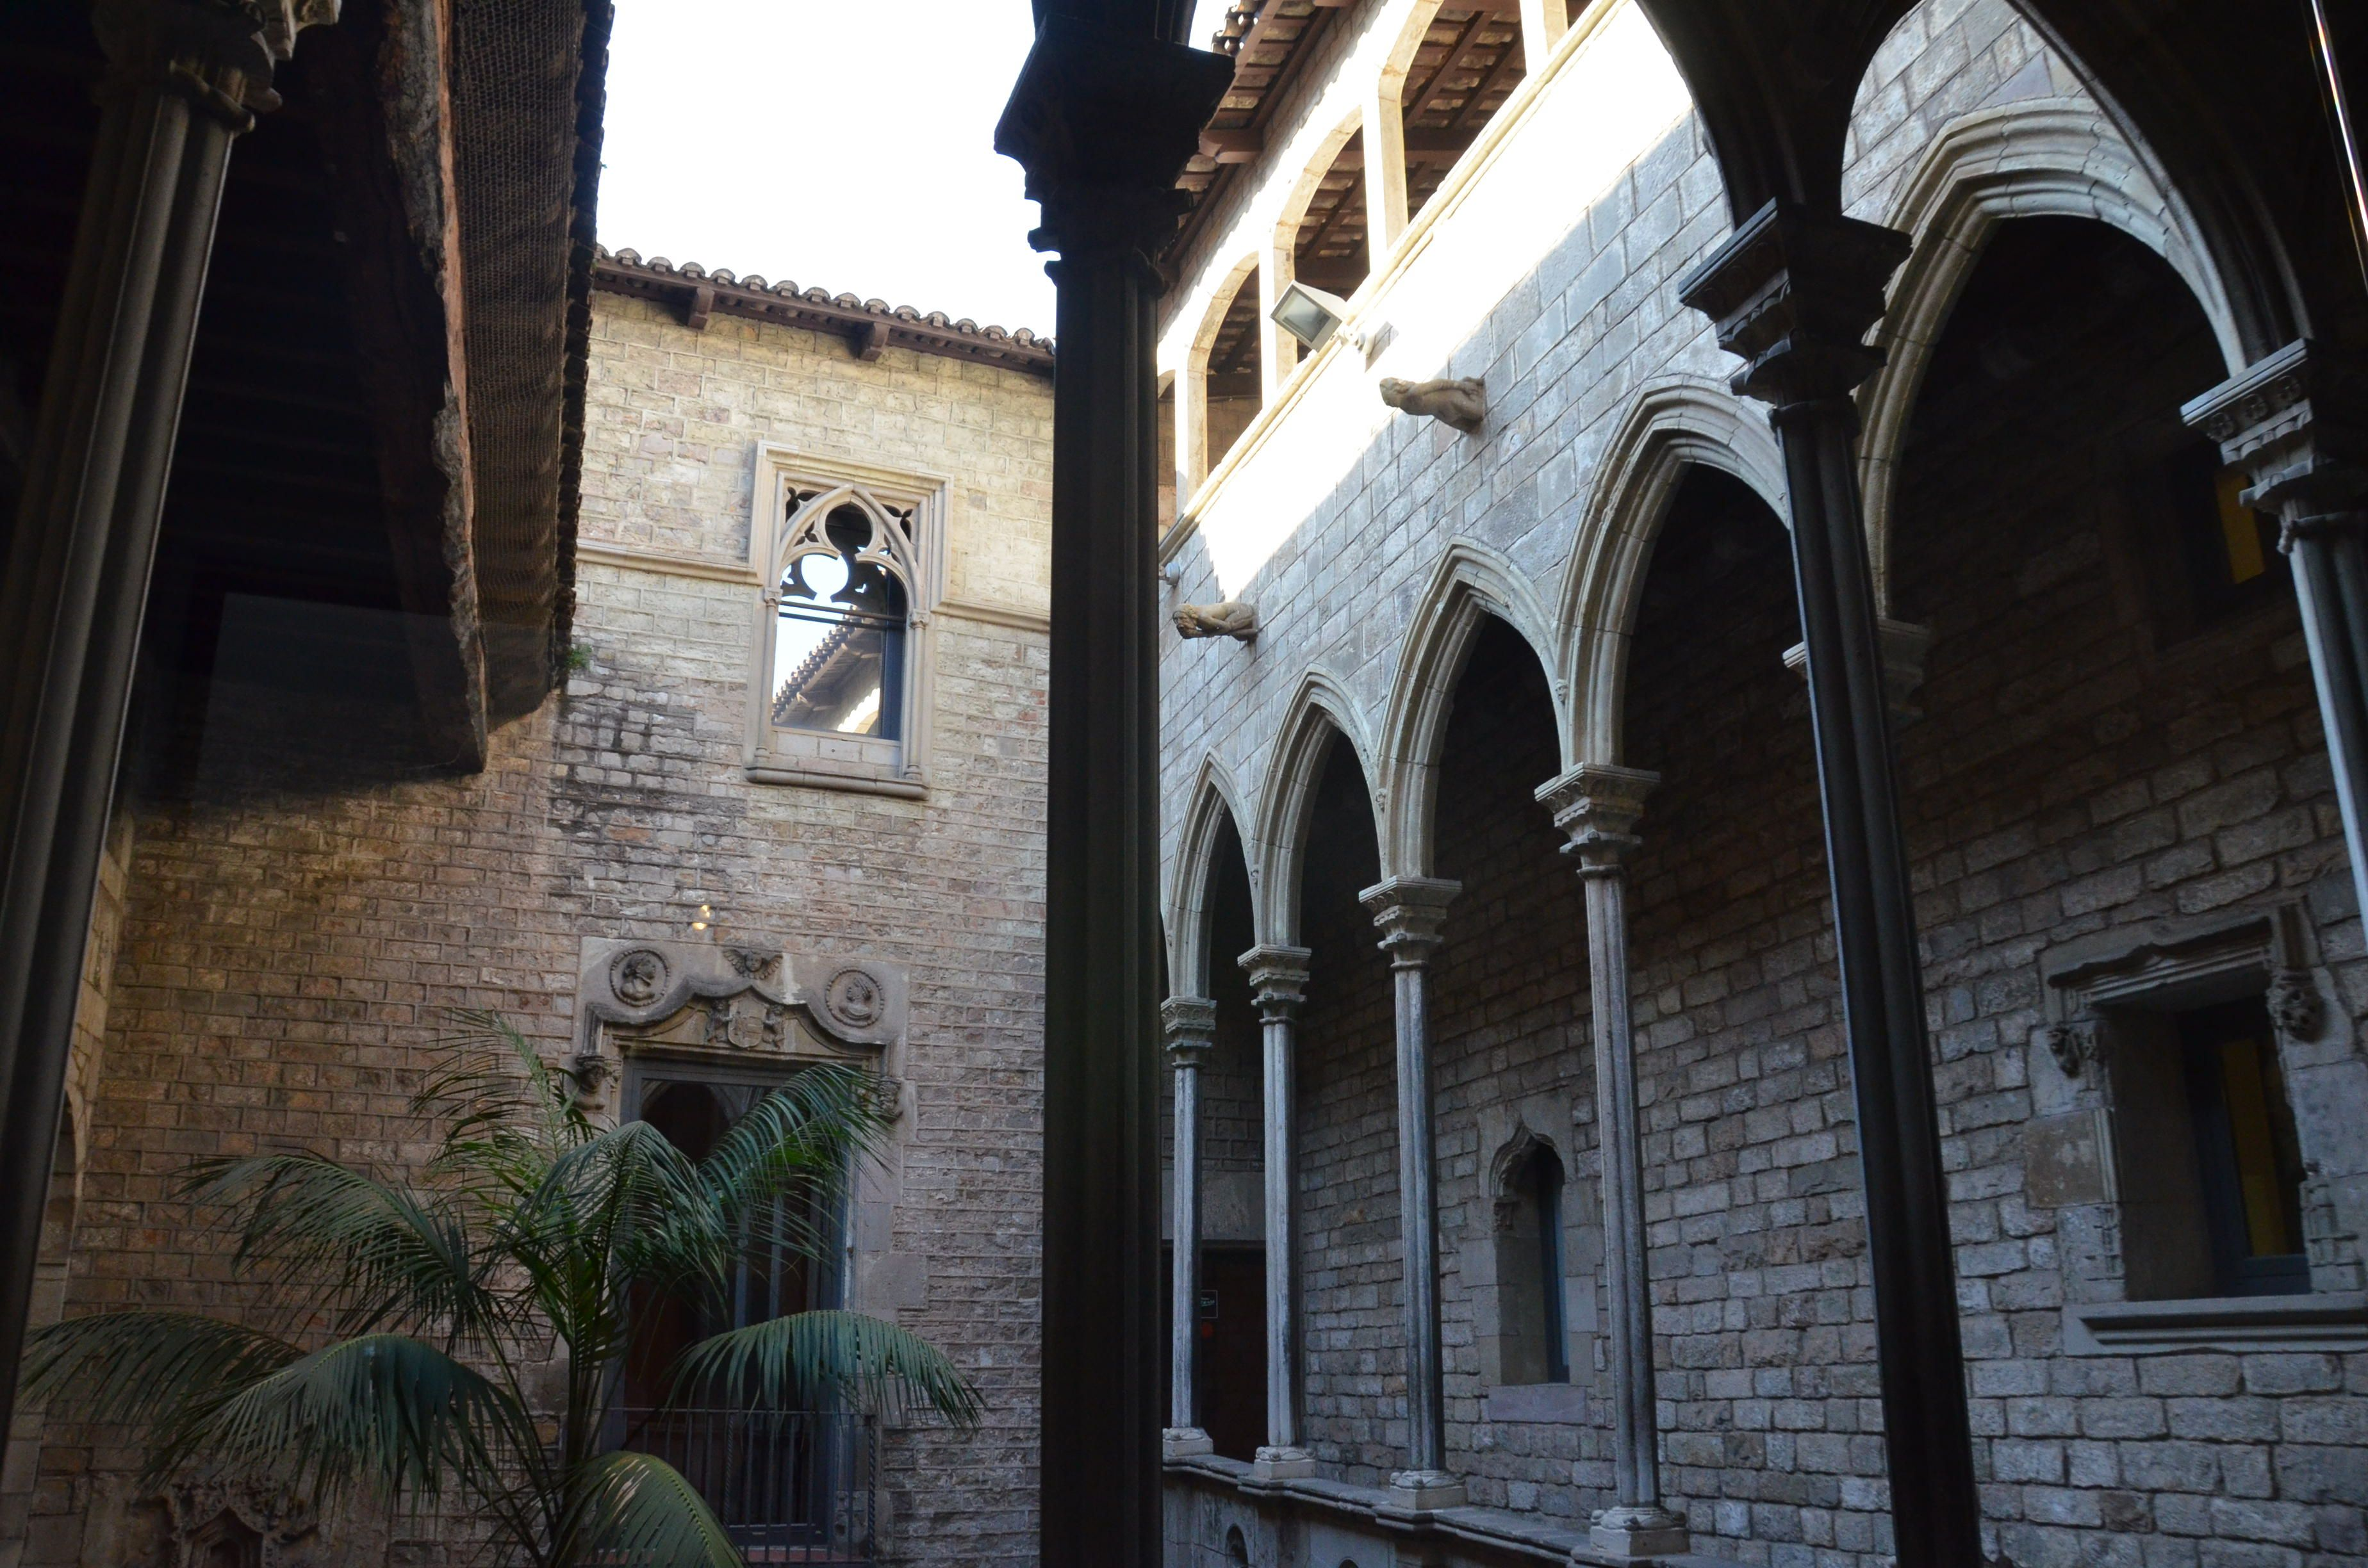 Picasso Museum, Barcelona: All year